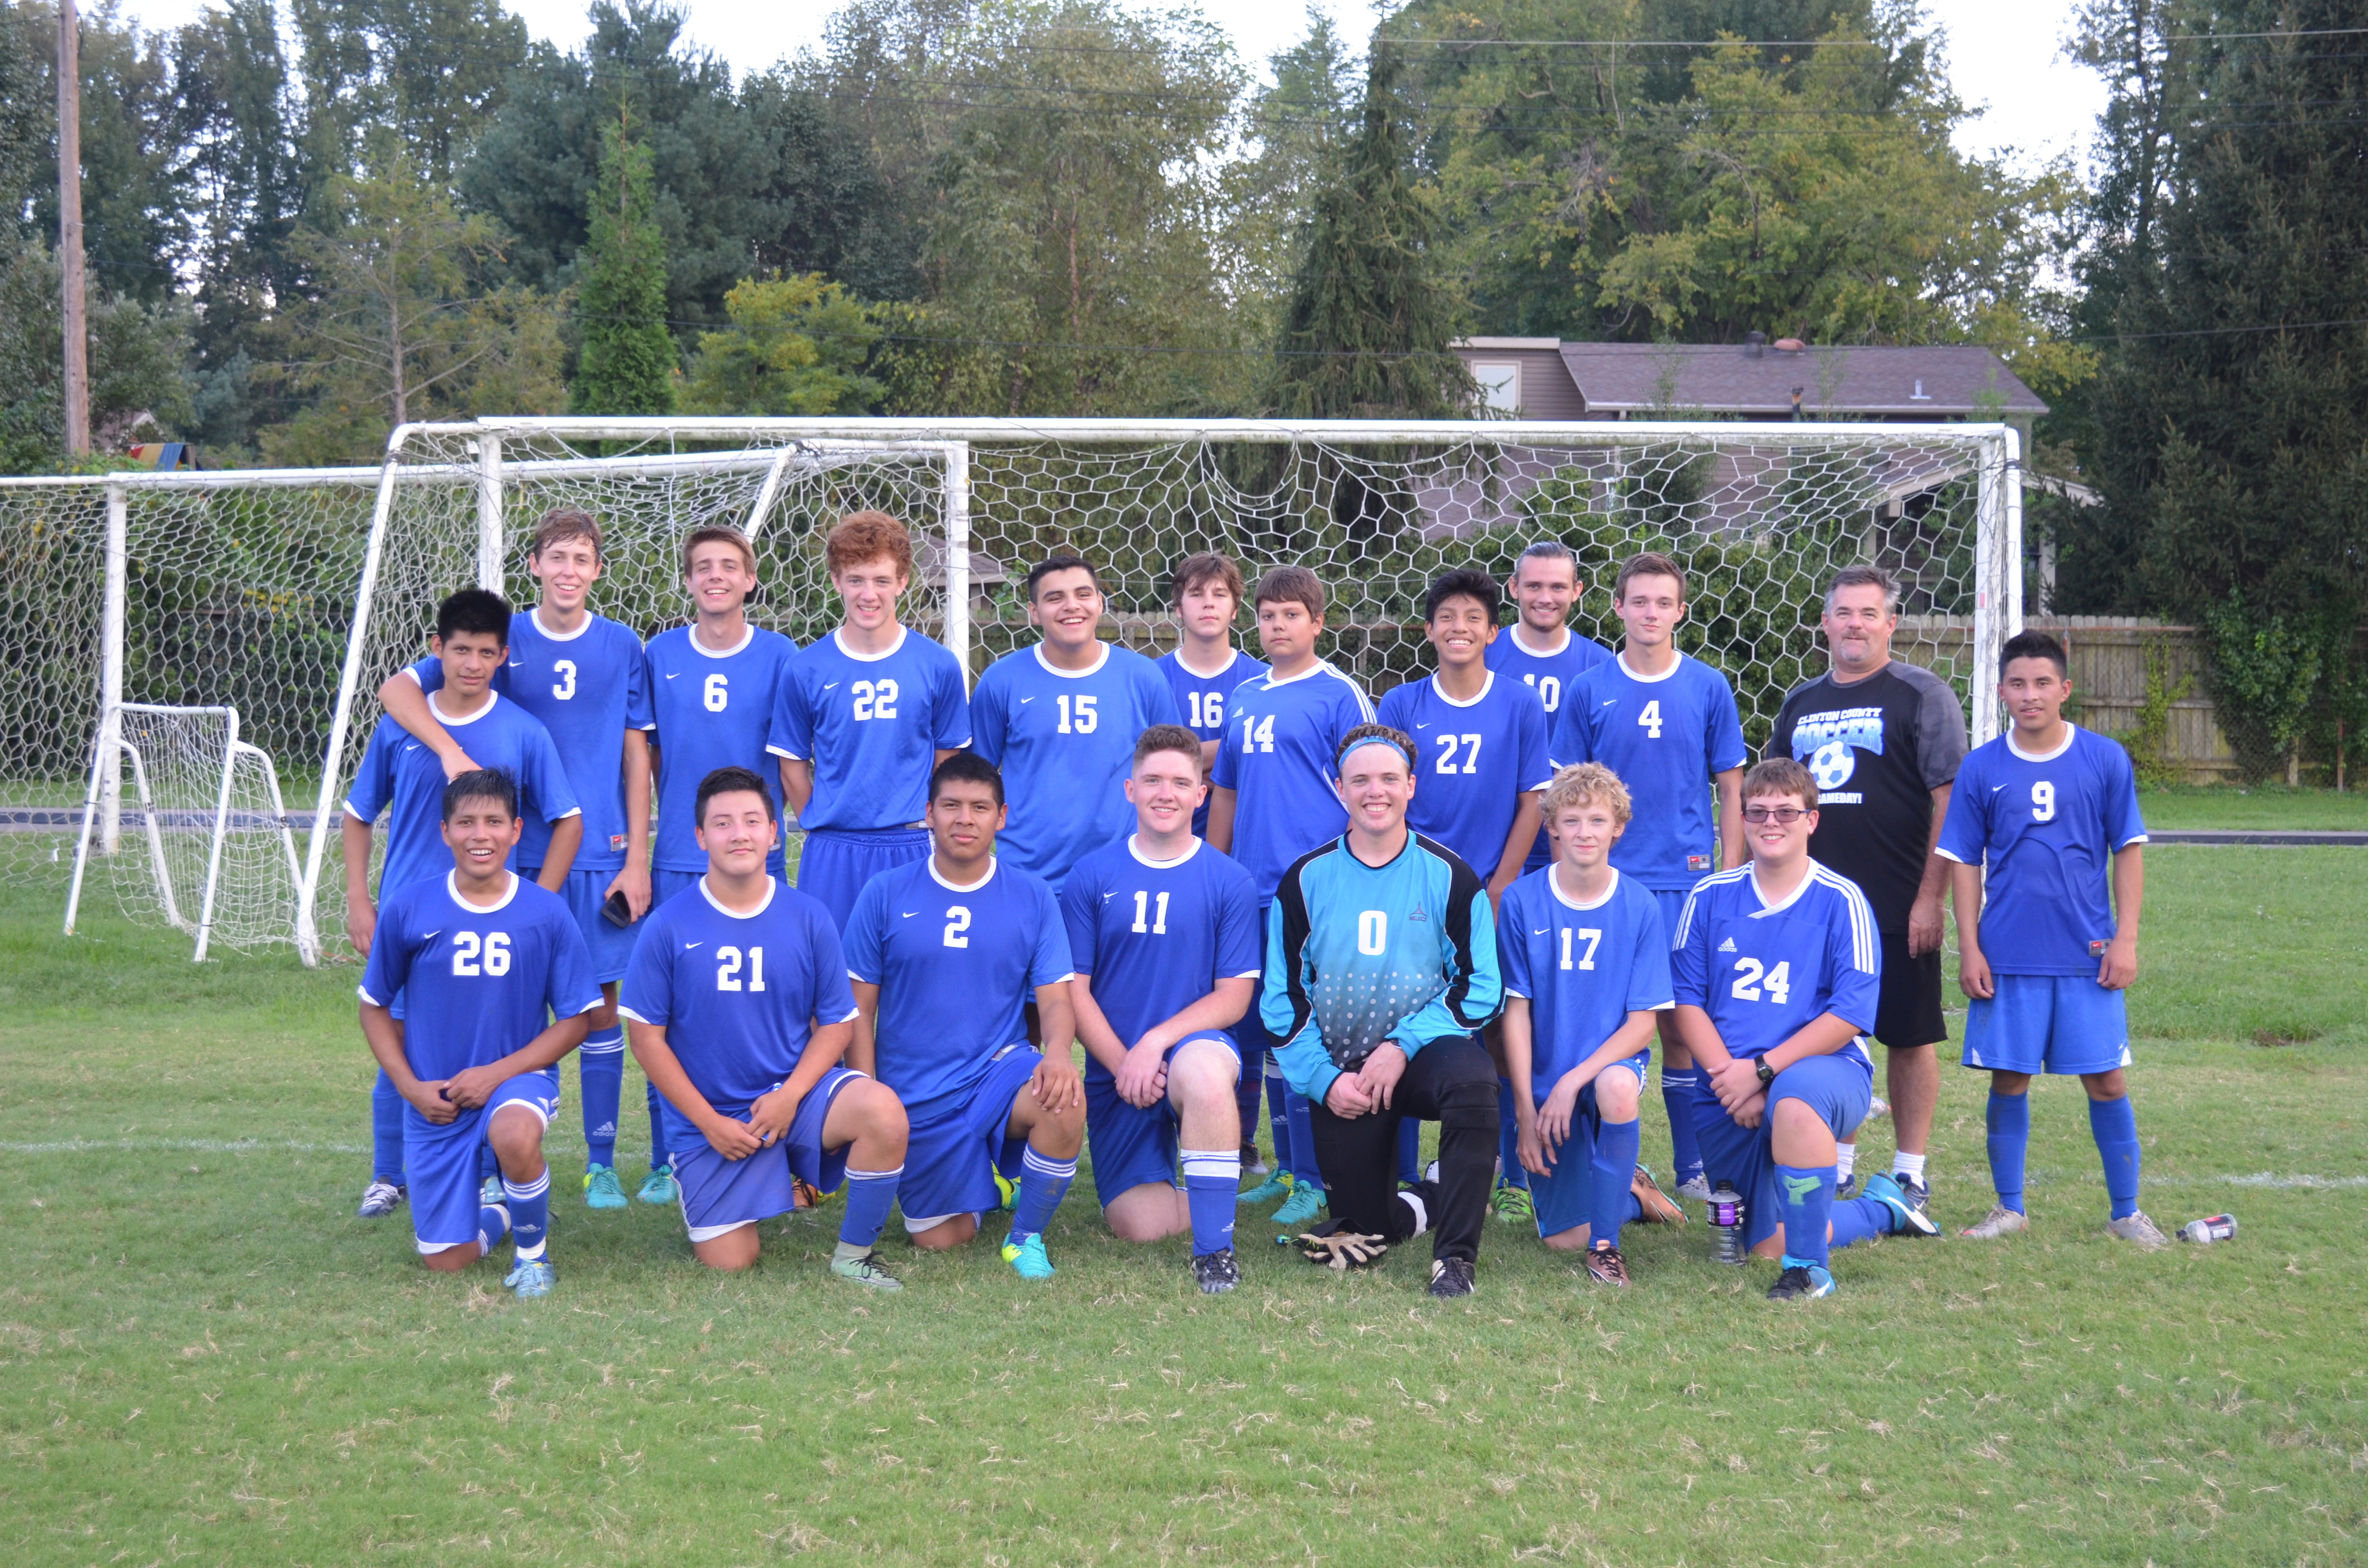 The Clinton County High School Boys Varsity Soccer Team defeated Owensboro Catholic 2-0 in the state sectional on Saturday, September 17th to advance to the state tournament.